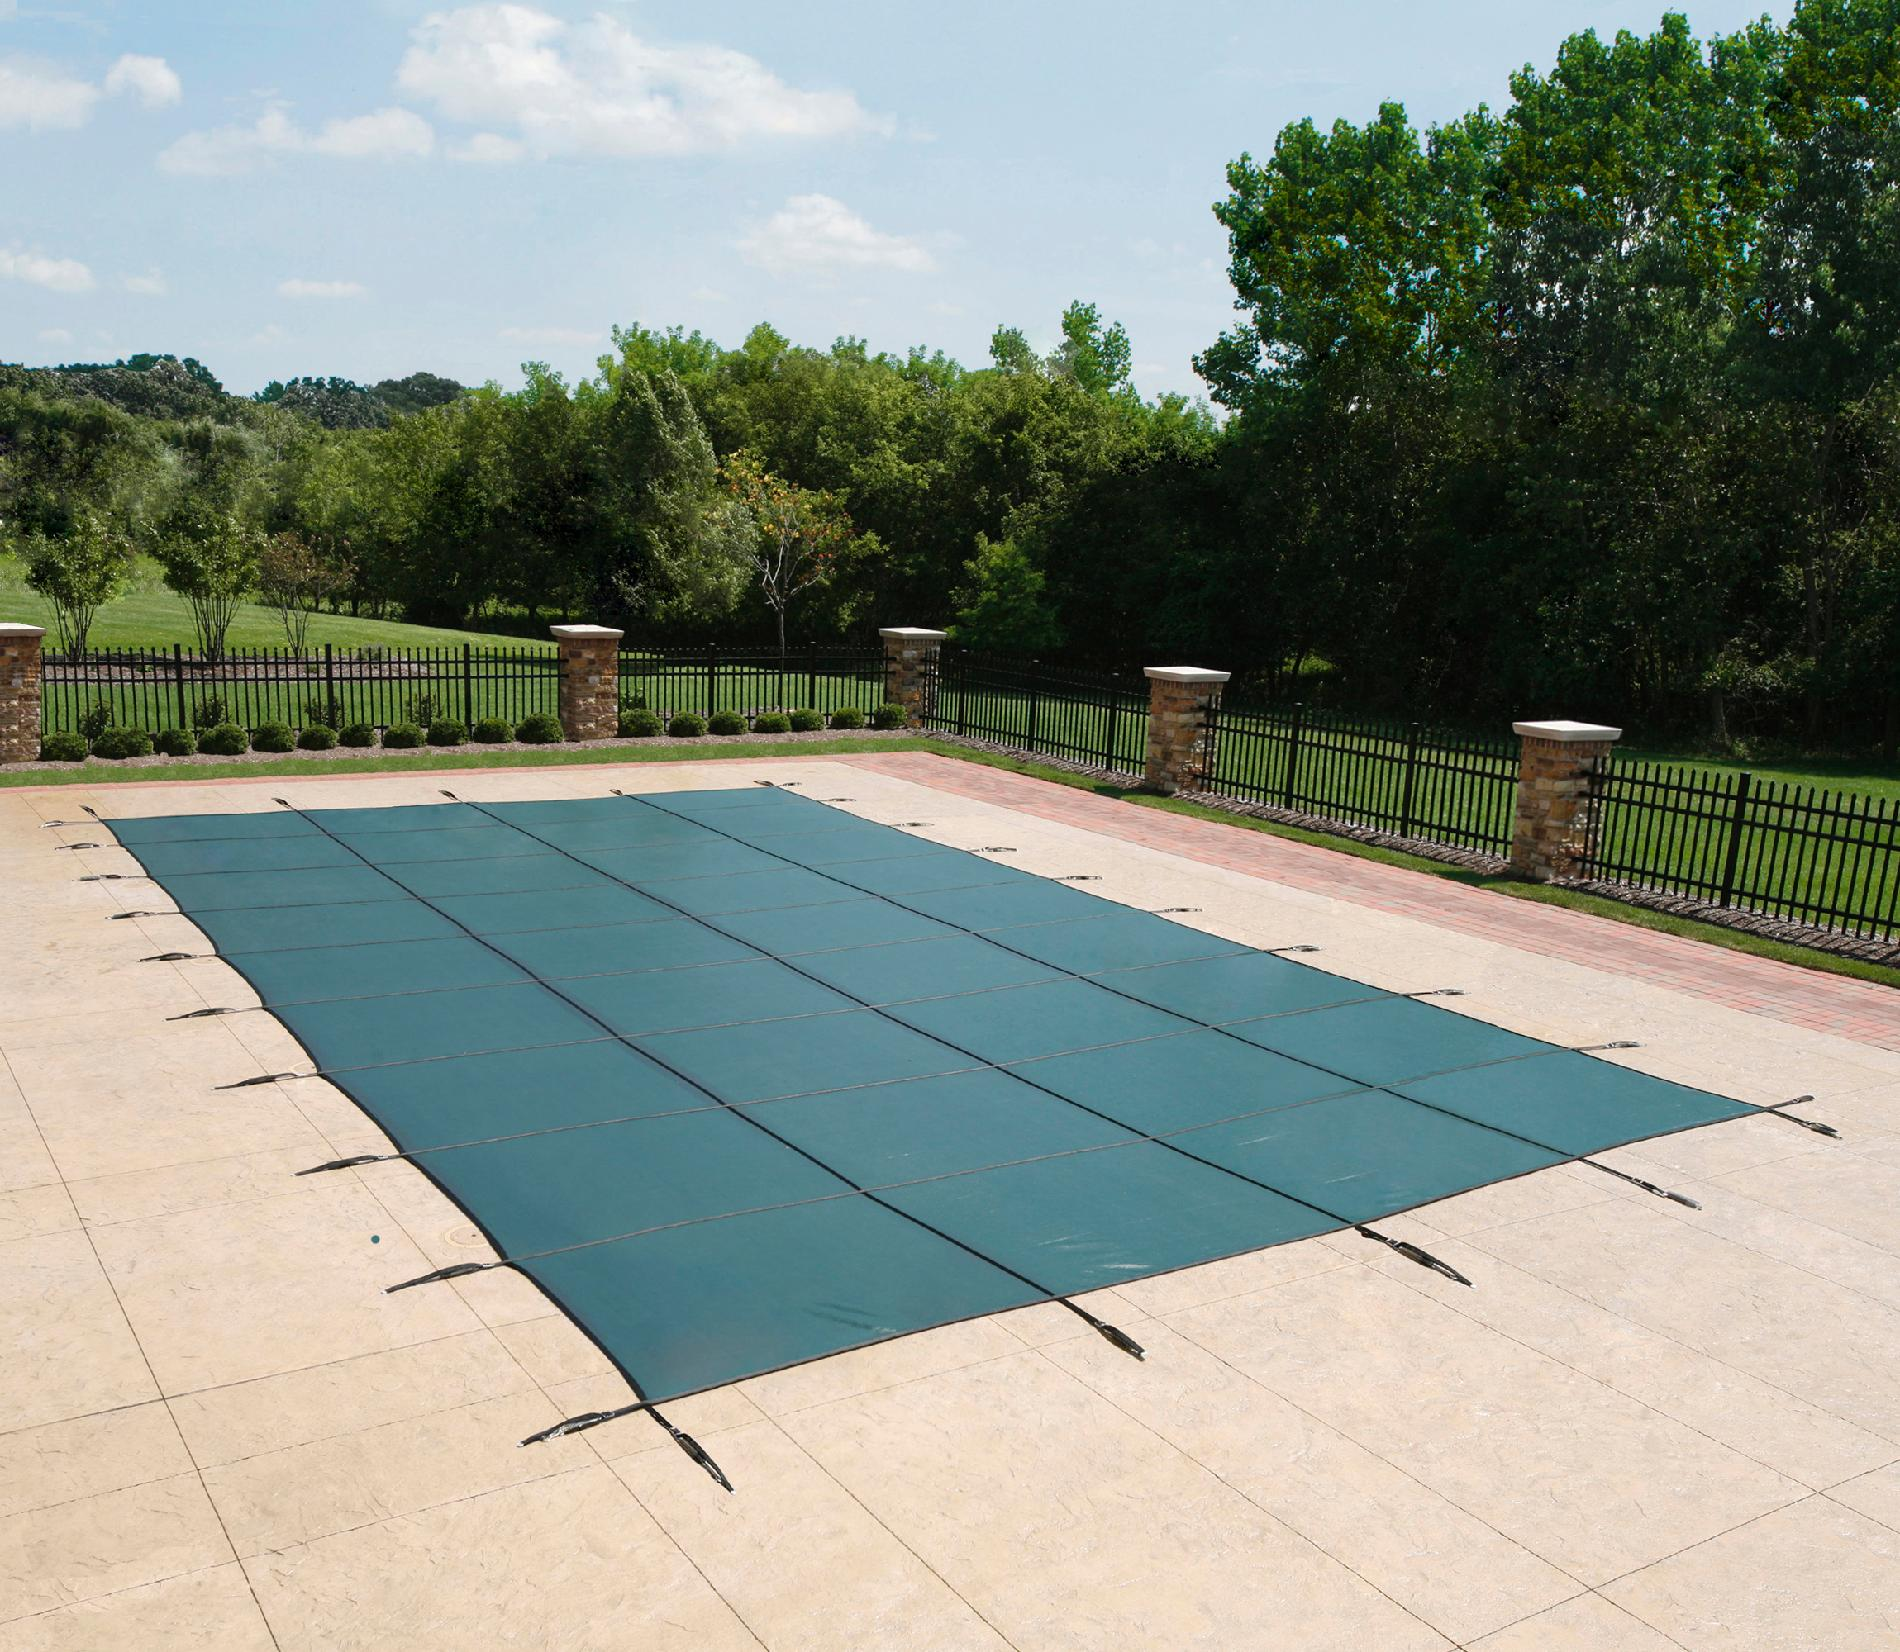 clearance overstock items discounted weekly royal swimming pools